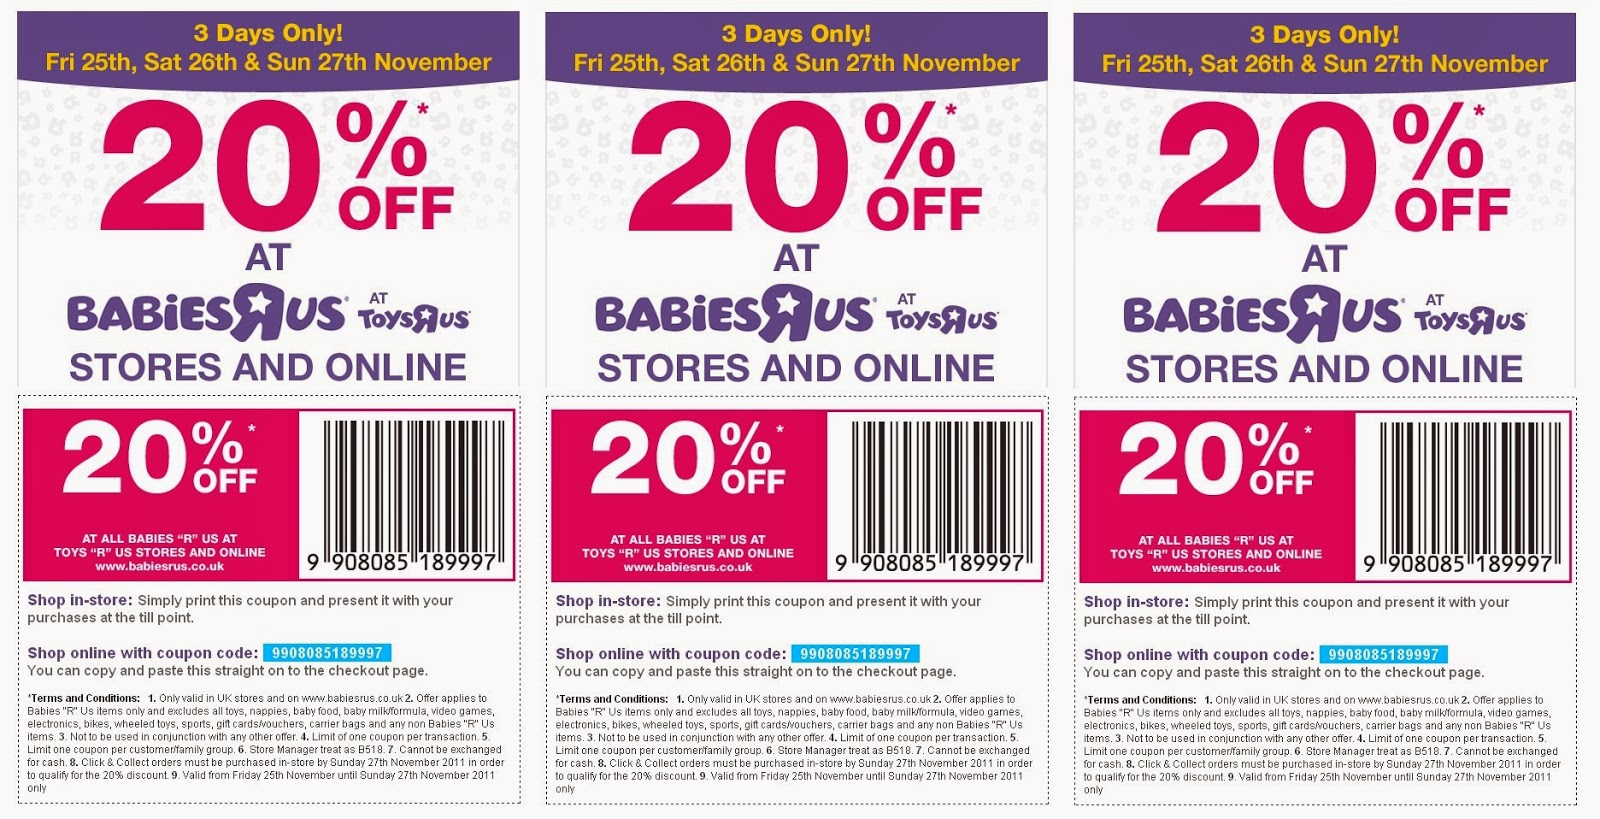 Toys r us deals june 2018